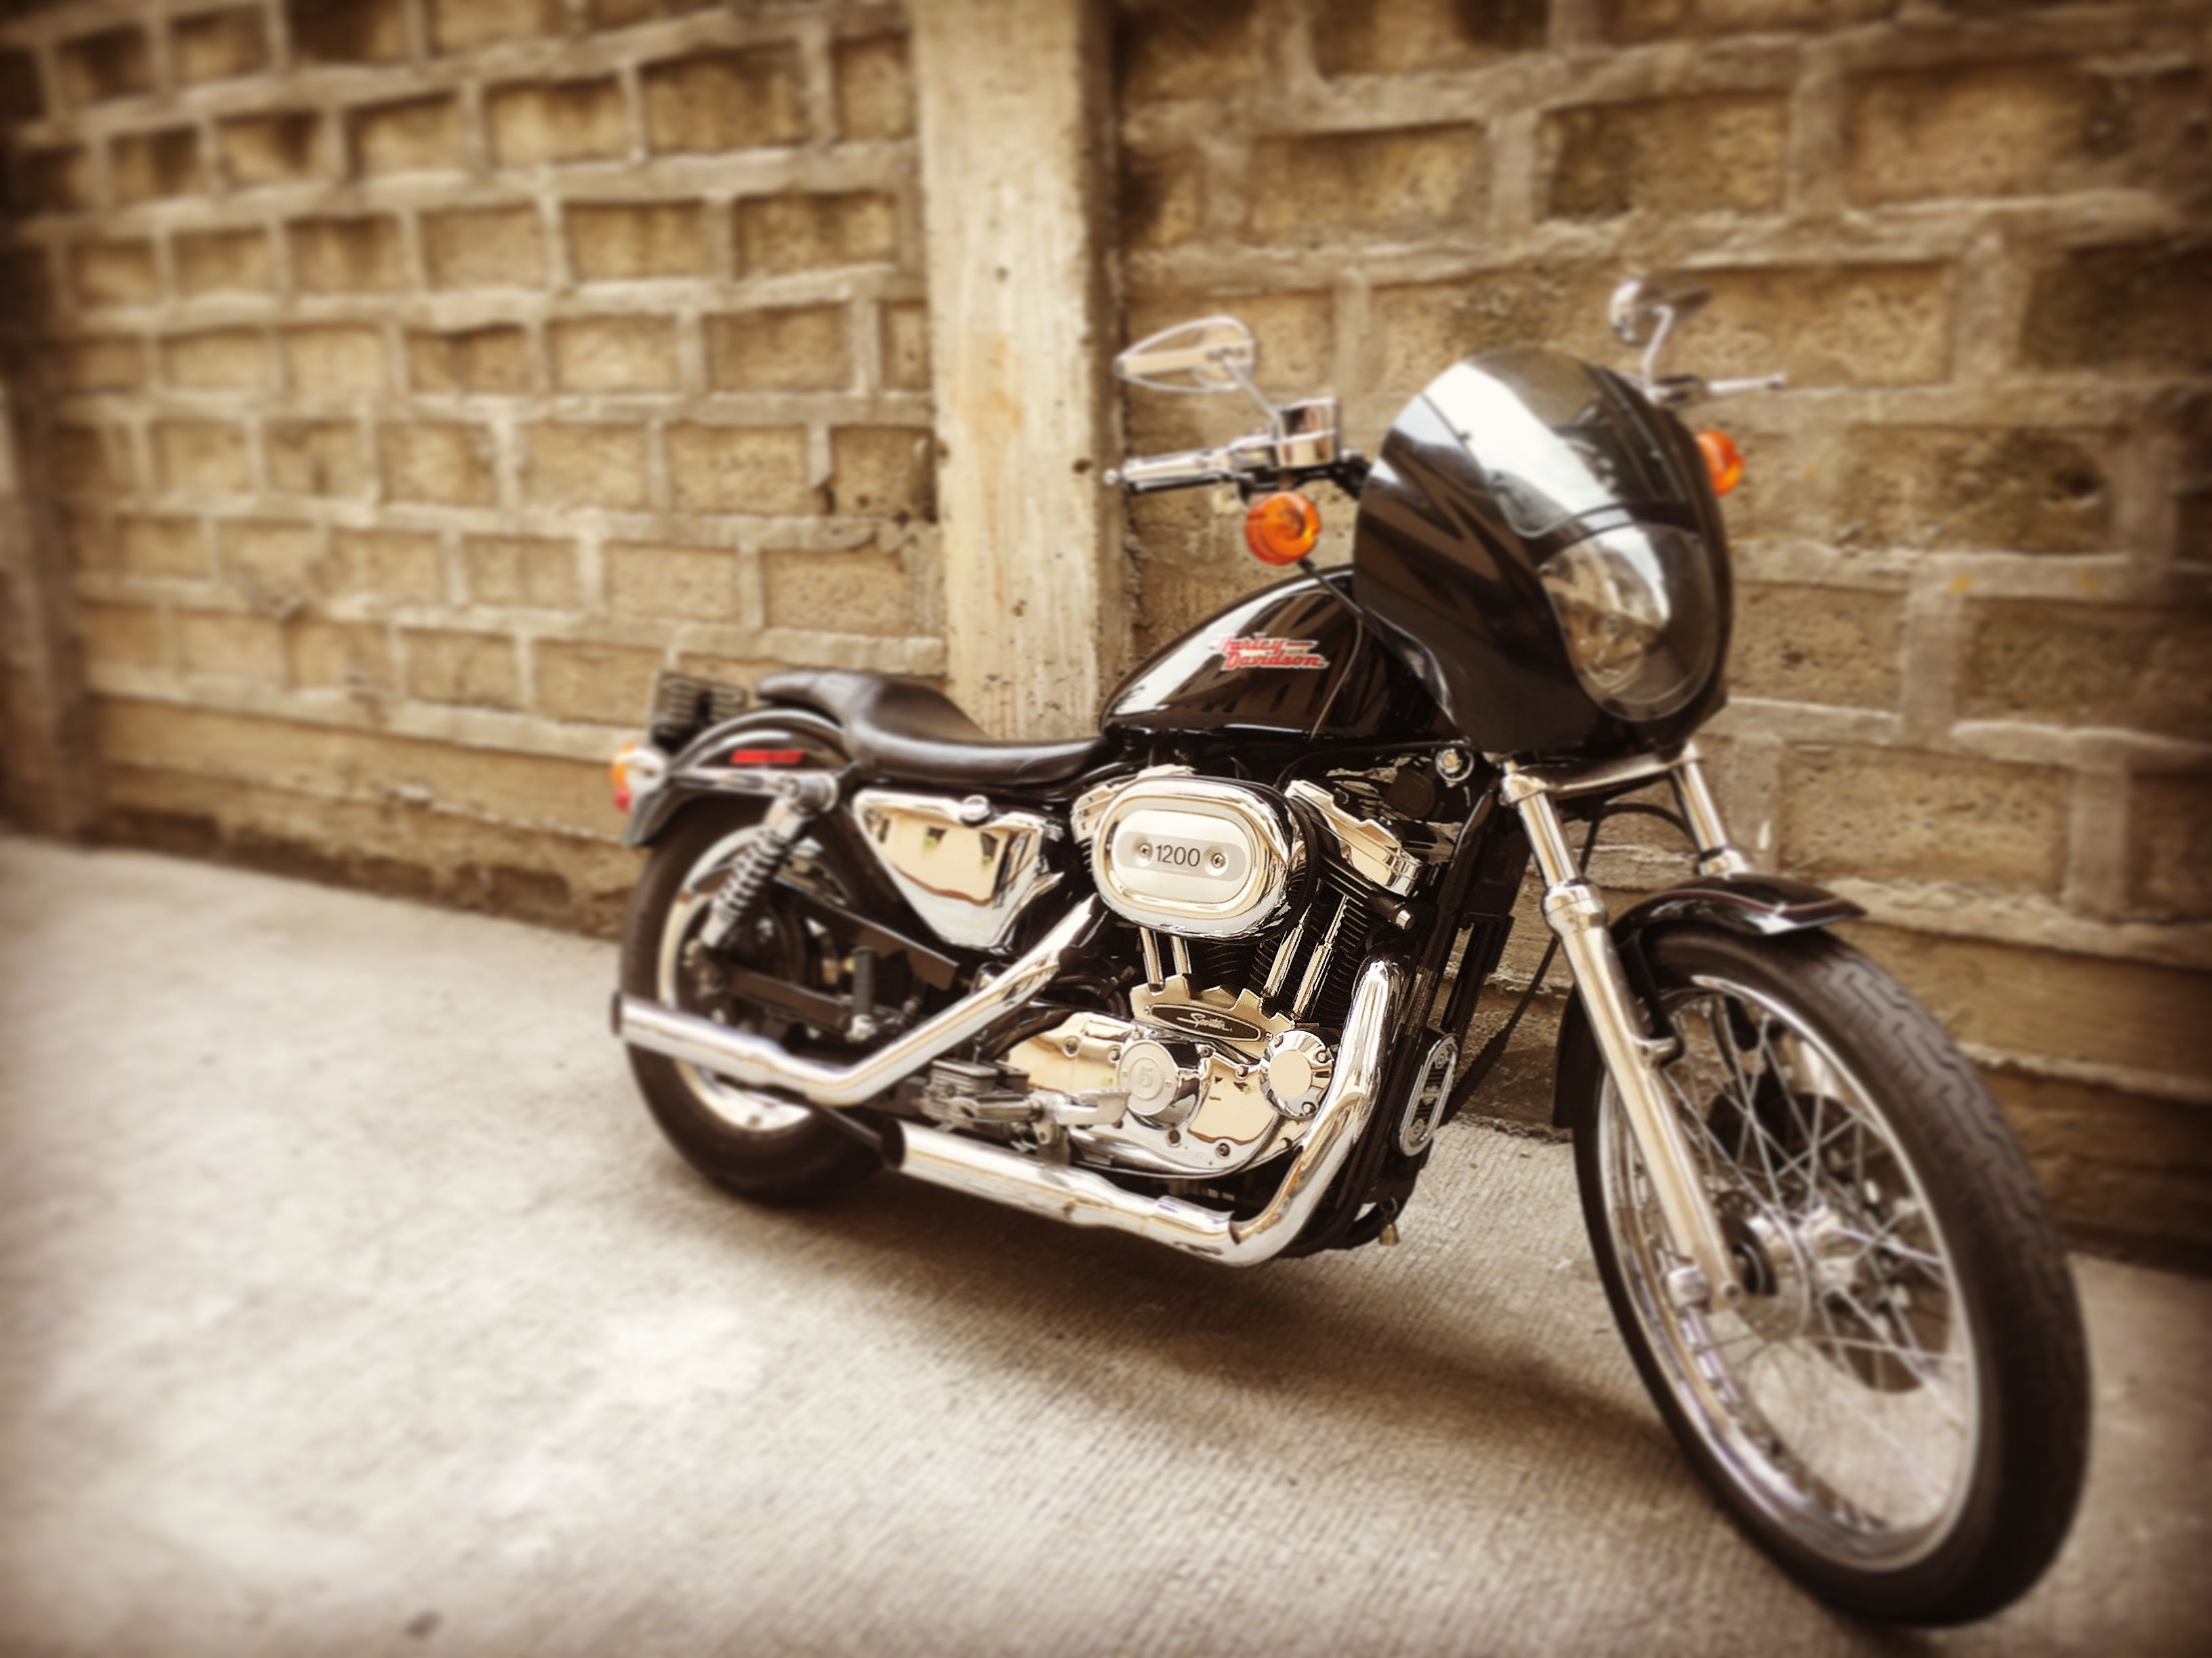 The 1997 XLH1200c Sportster 1200 Custom with mids on and the quarter  fairing. #harleydavidson #harley #bratsportster #hd #sportster #custom  #xlh1200c ...